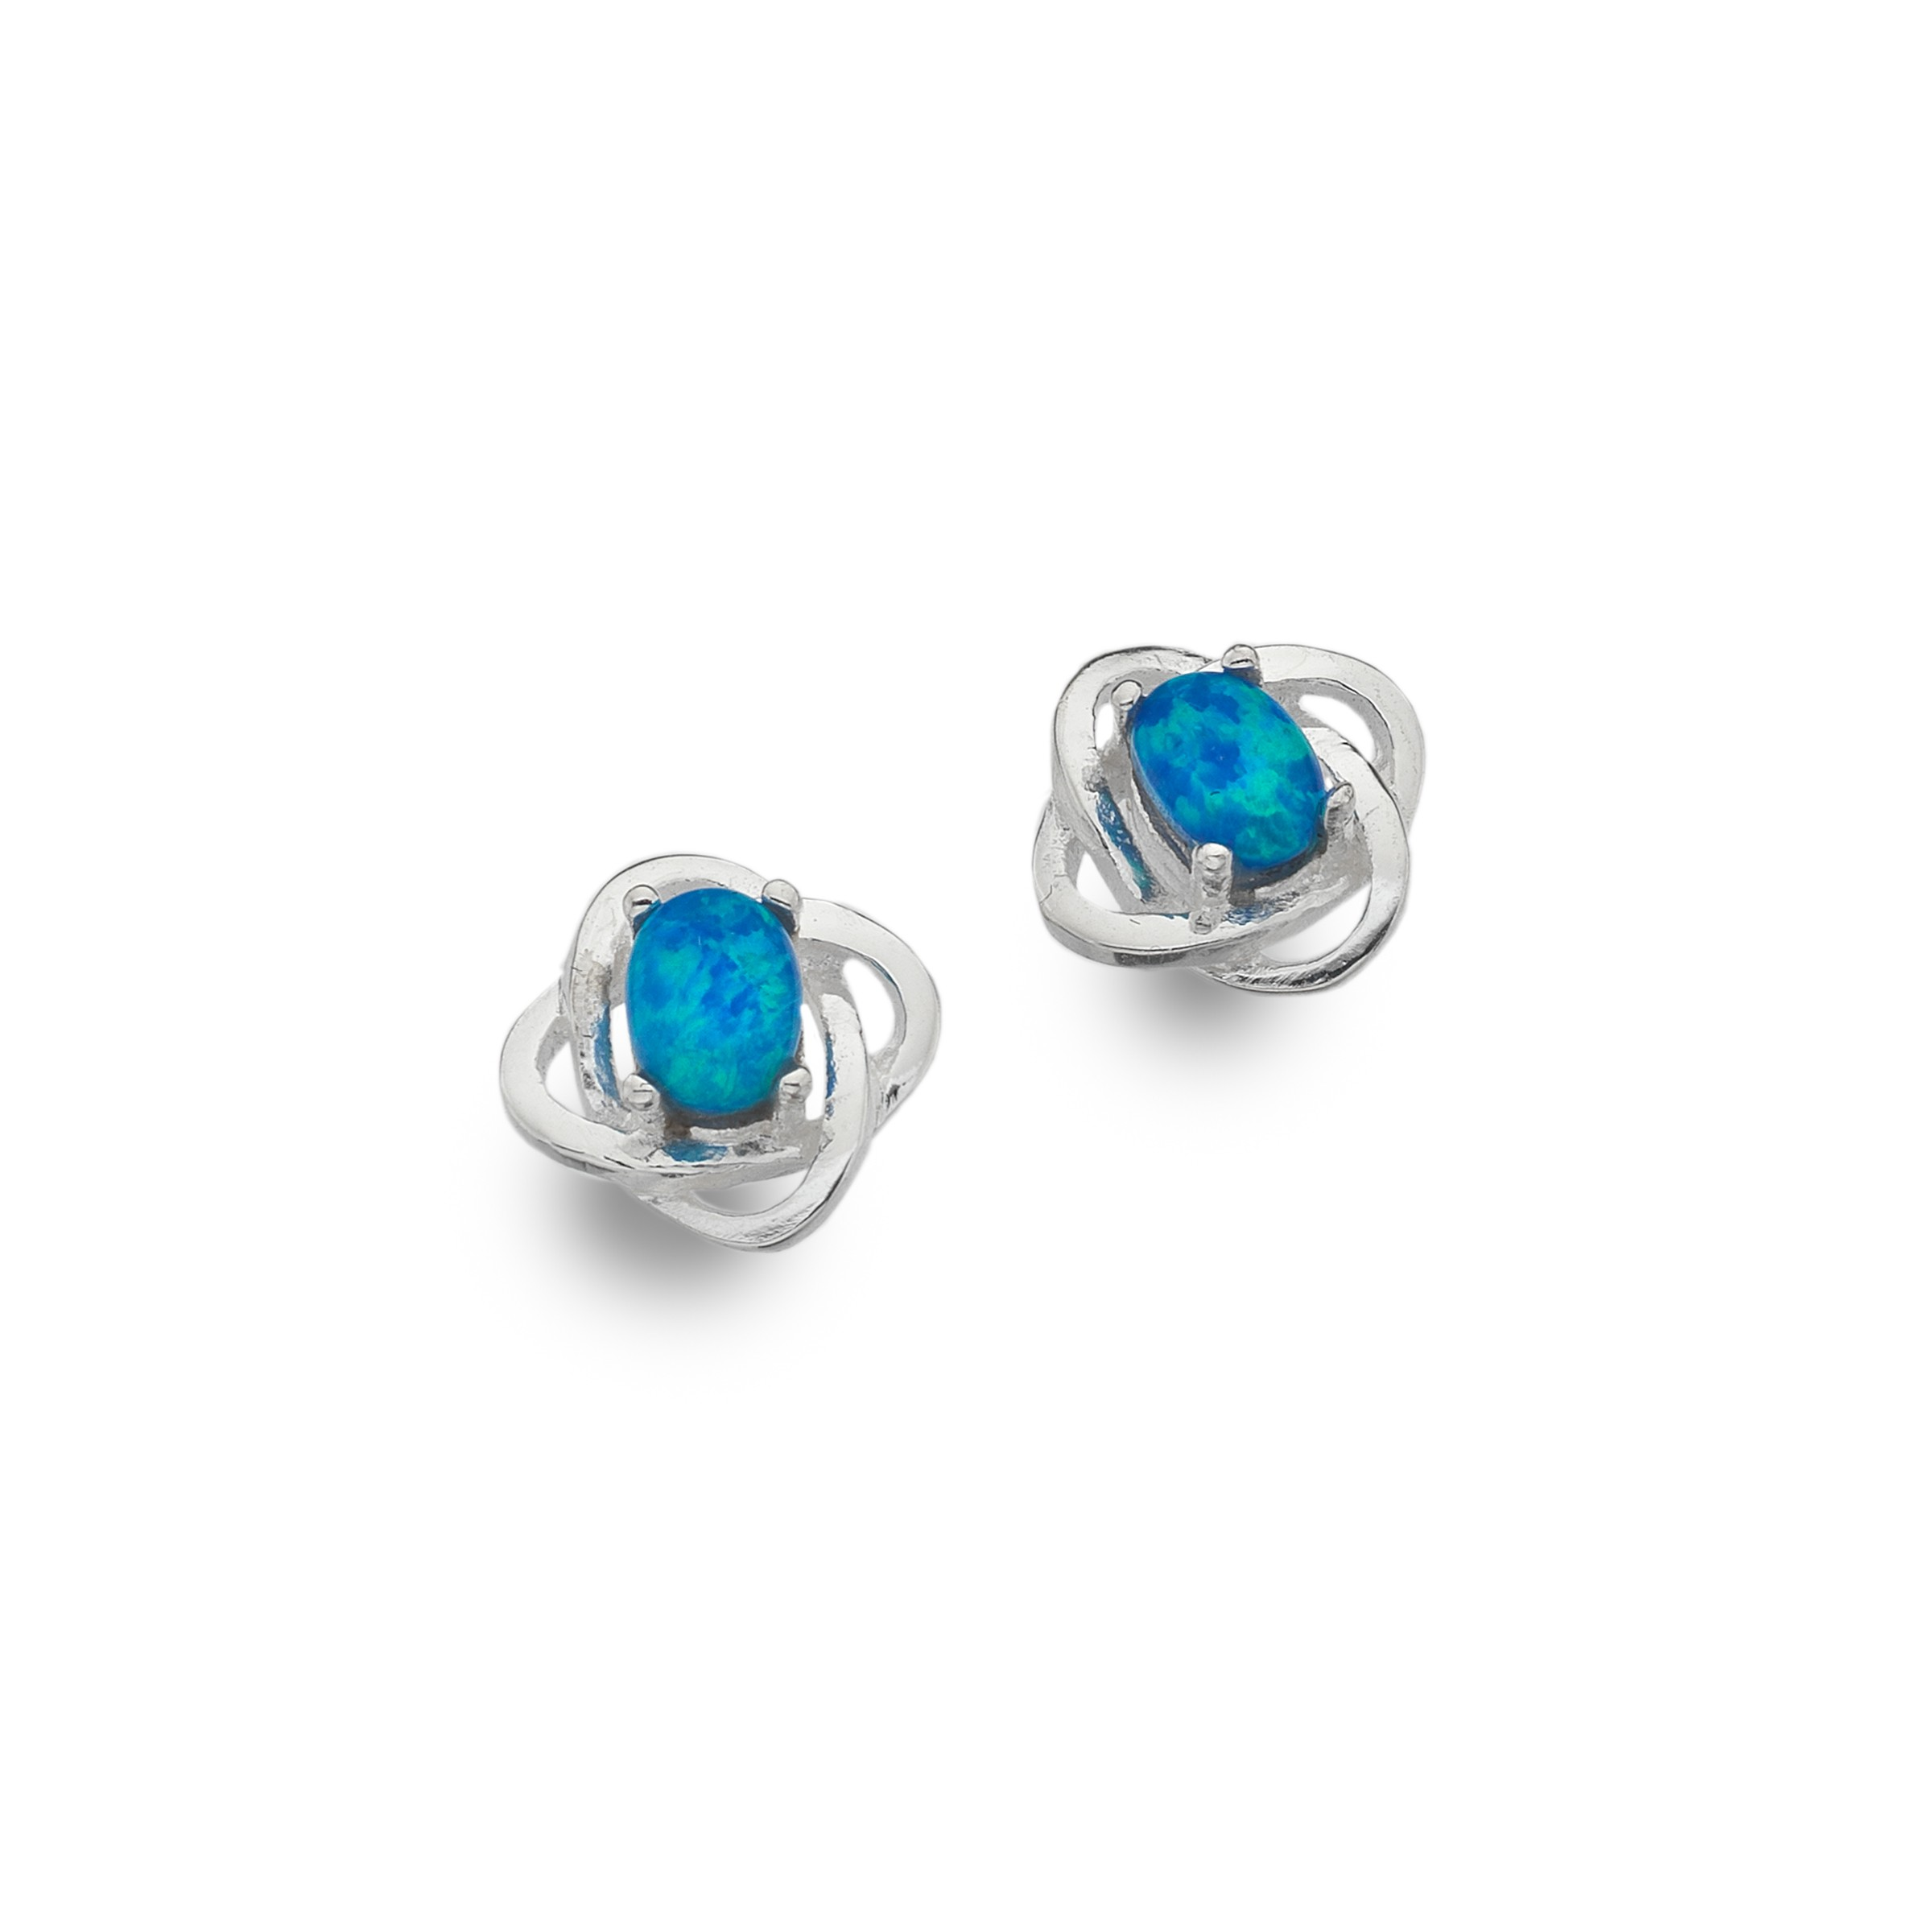 earrings mk sil blue crbop enhanced cut silver round rhodium elements sterling xilion caribbean crystals opal swarovski shop stud